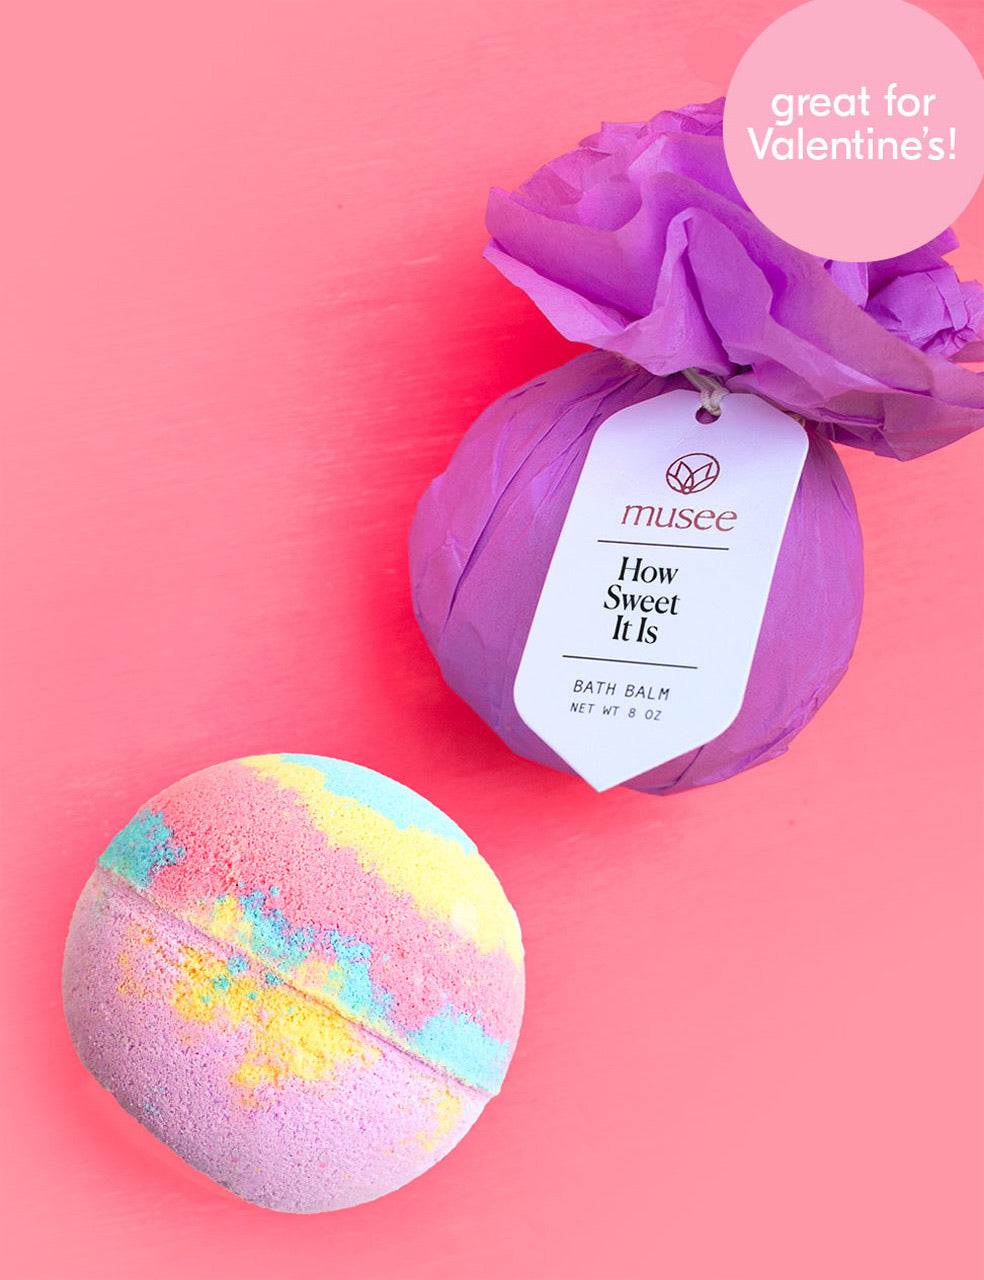 Musee Bath Bomb - How Sweet It Is - Monogram Gifts